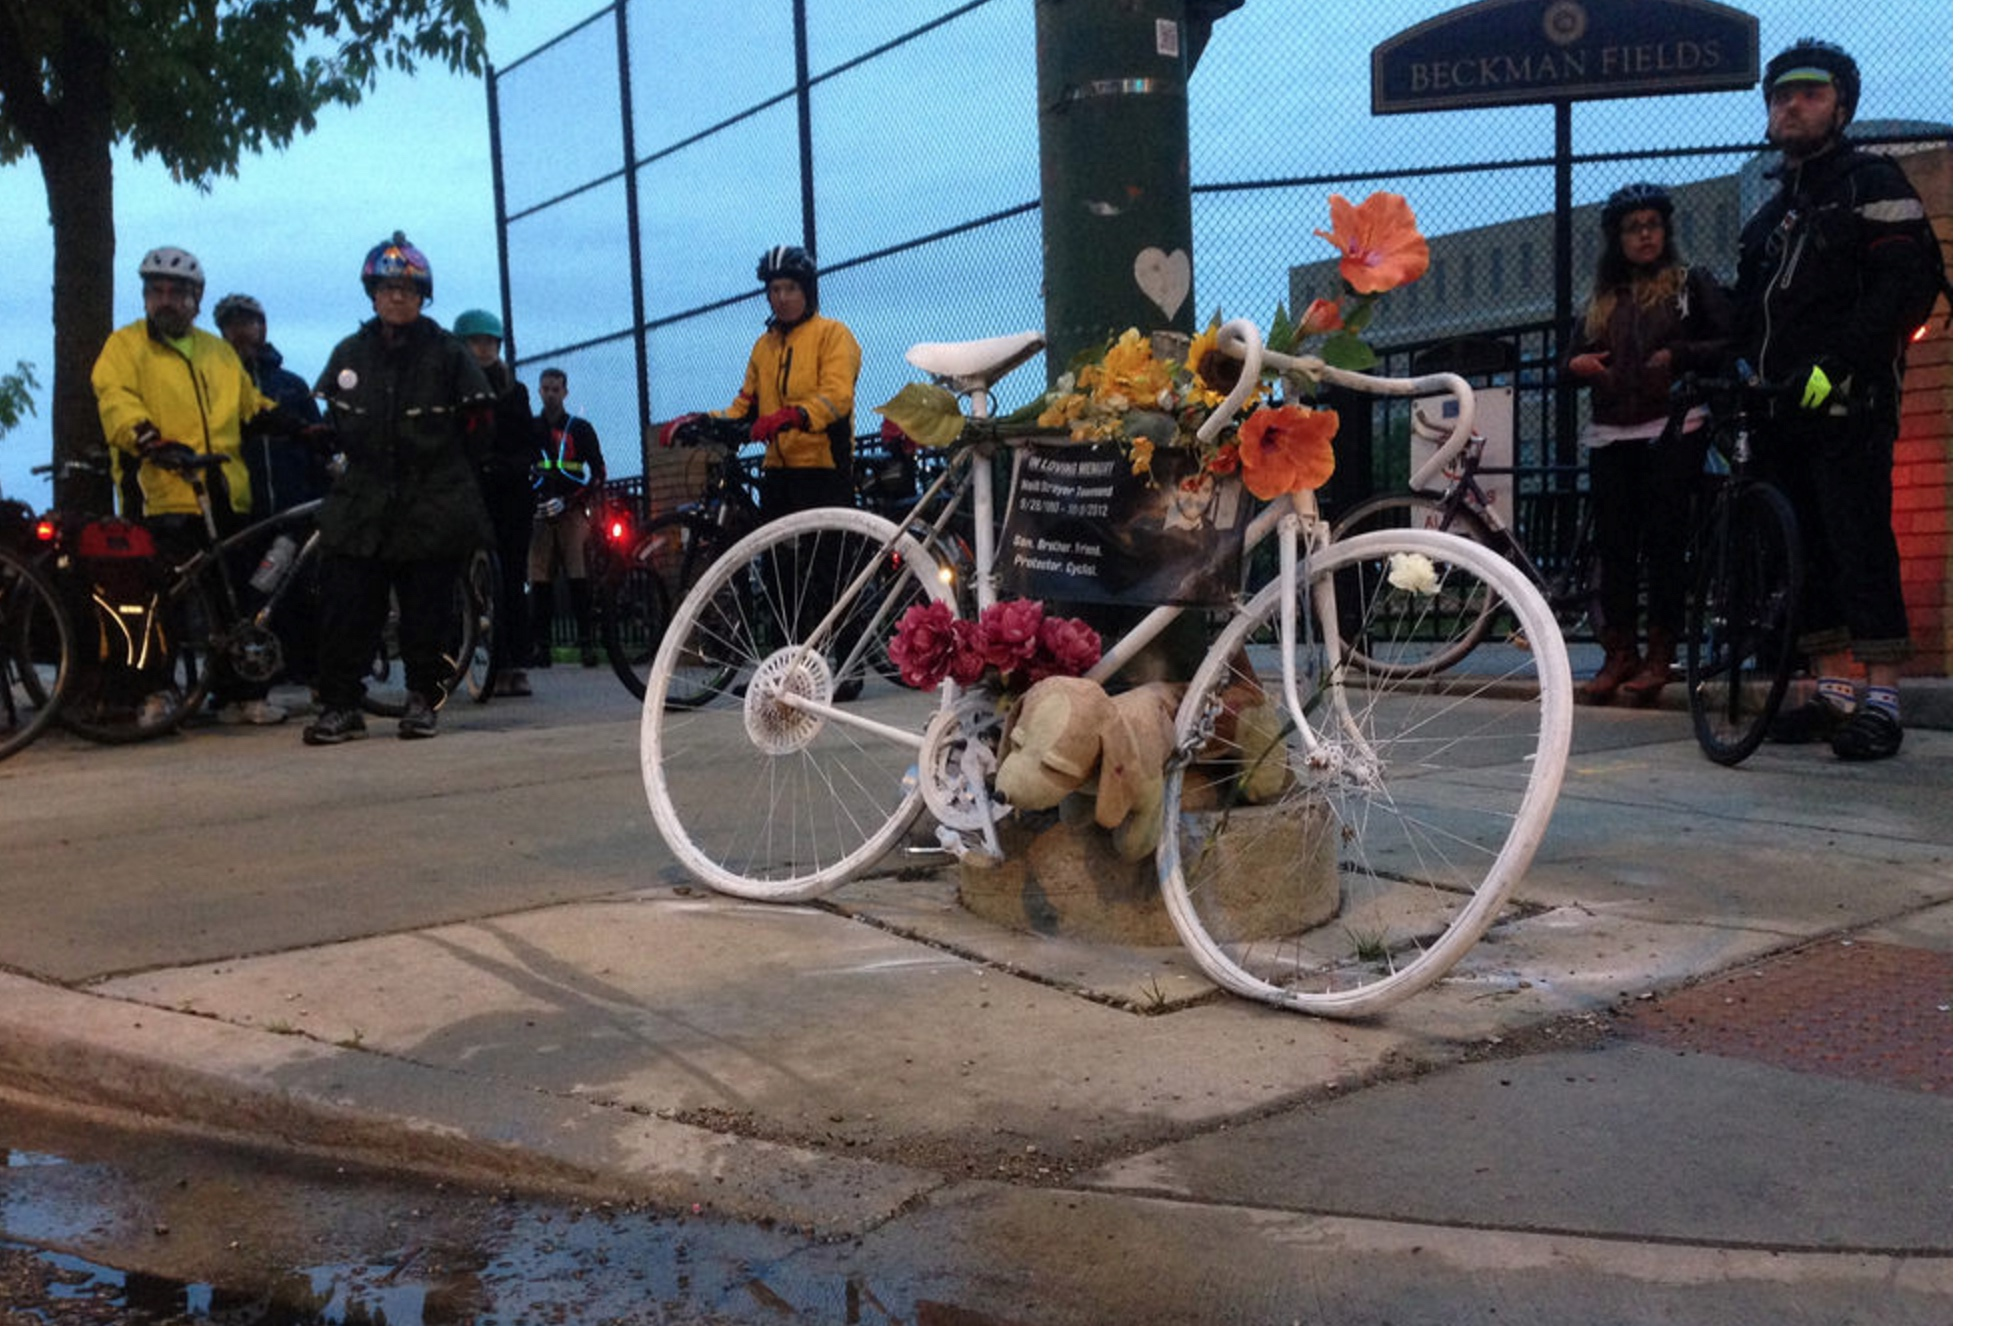 2015 Chicago Ride of Silence Ghost Bike with Riders